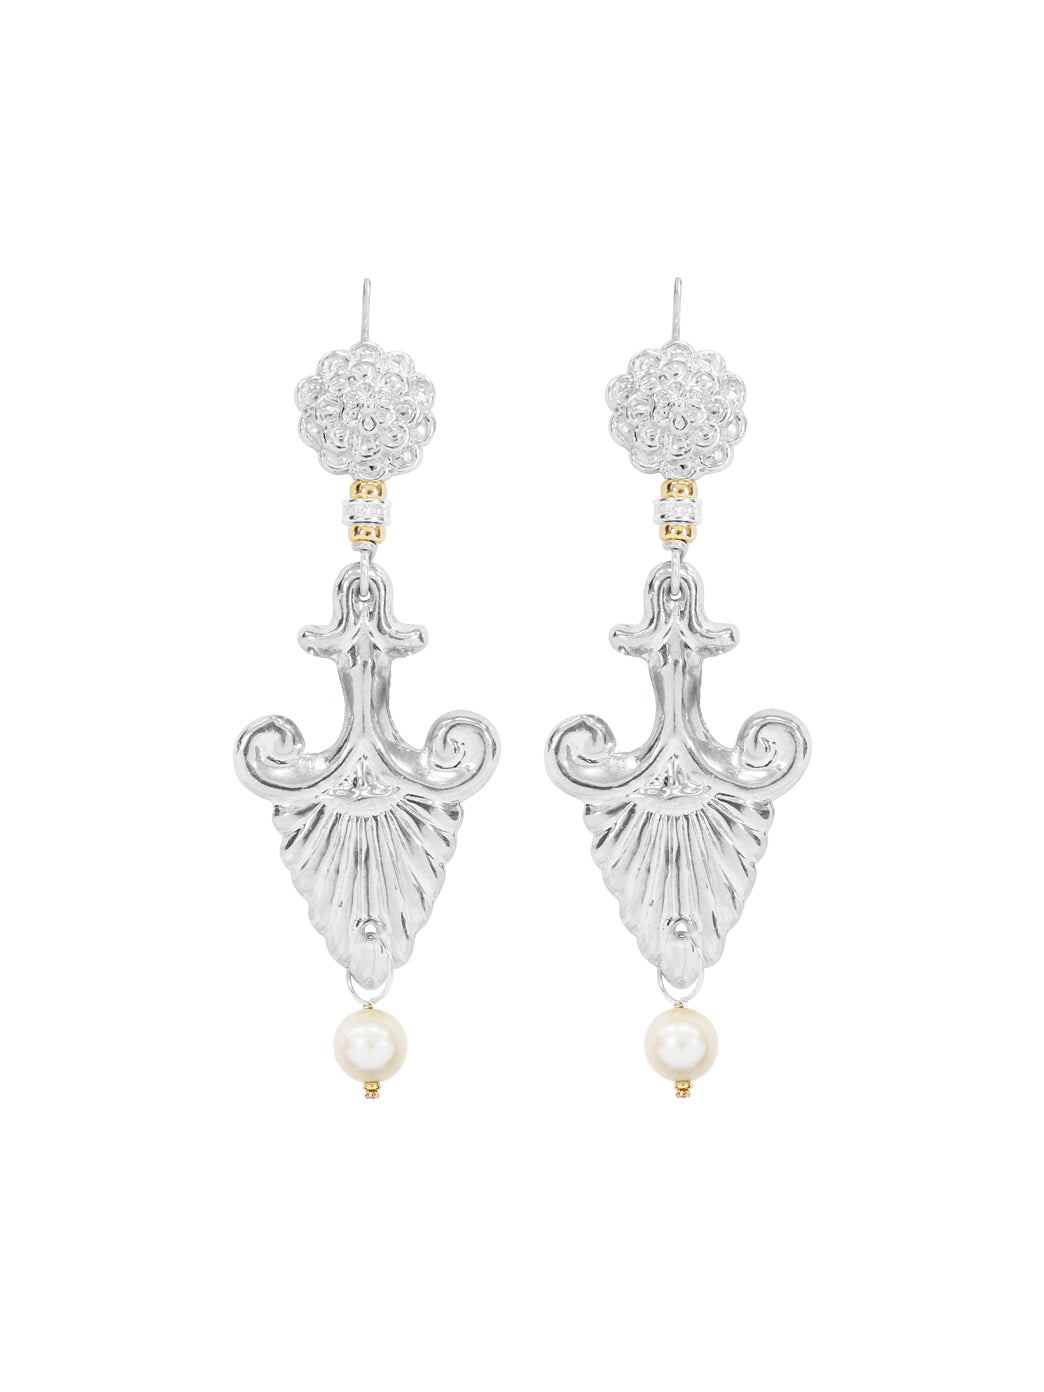 Fiorina Jewellery Silver Noto earrings White Pearl Highlights